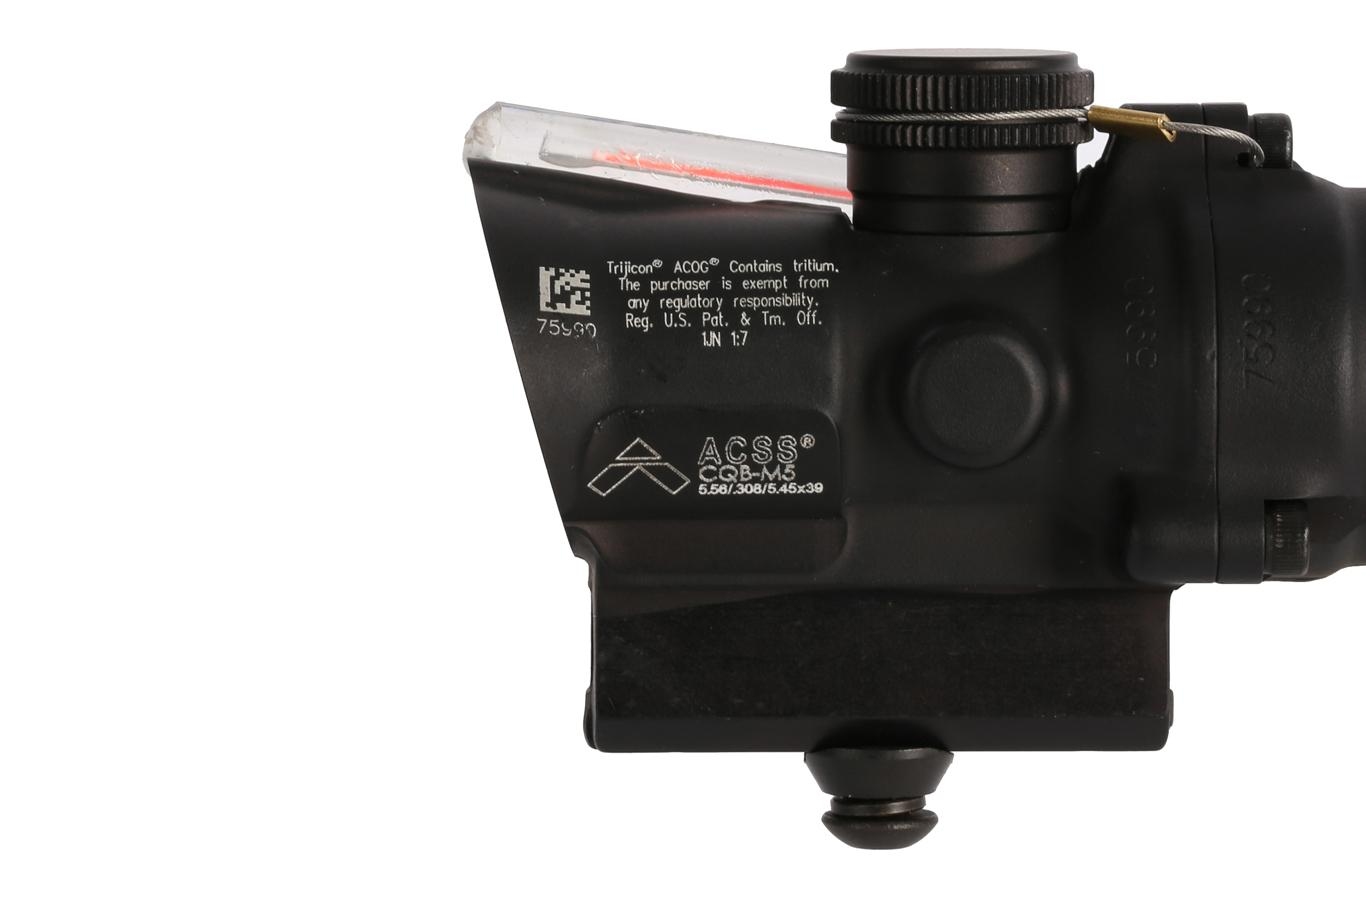 Trijicon ACOG 1.5x16S High Compact Scope - Dual Illuminated ACSS CQB-M5 - Red